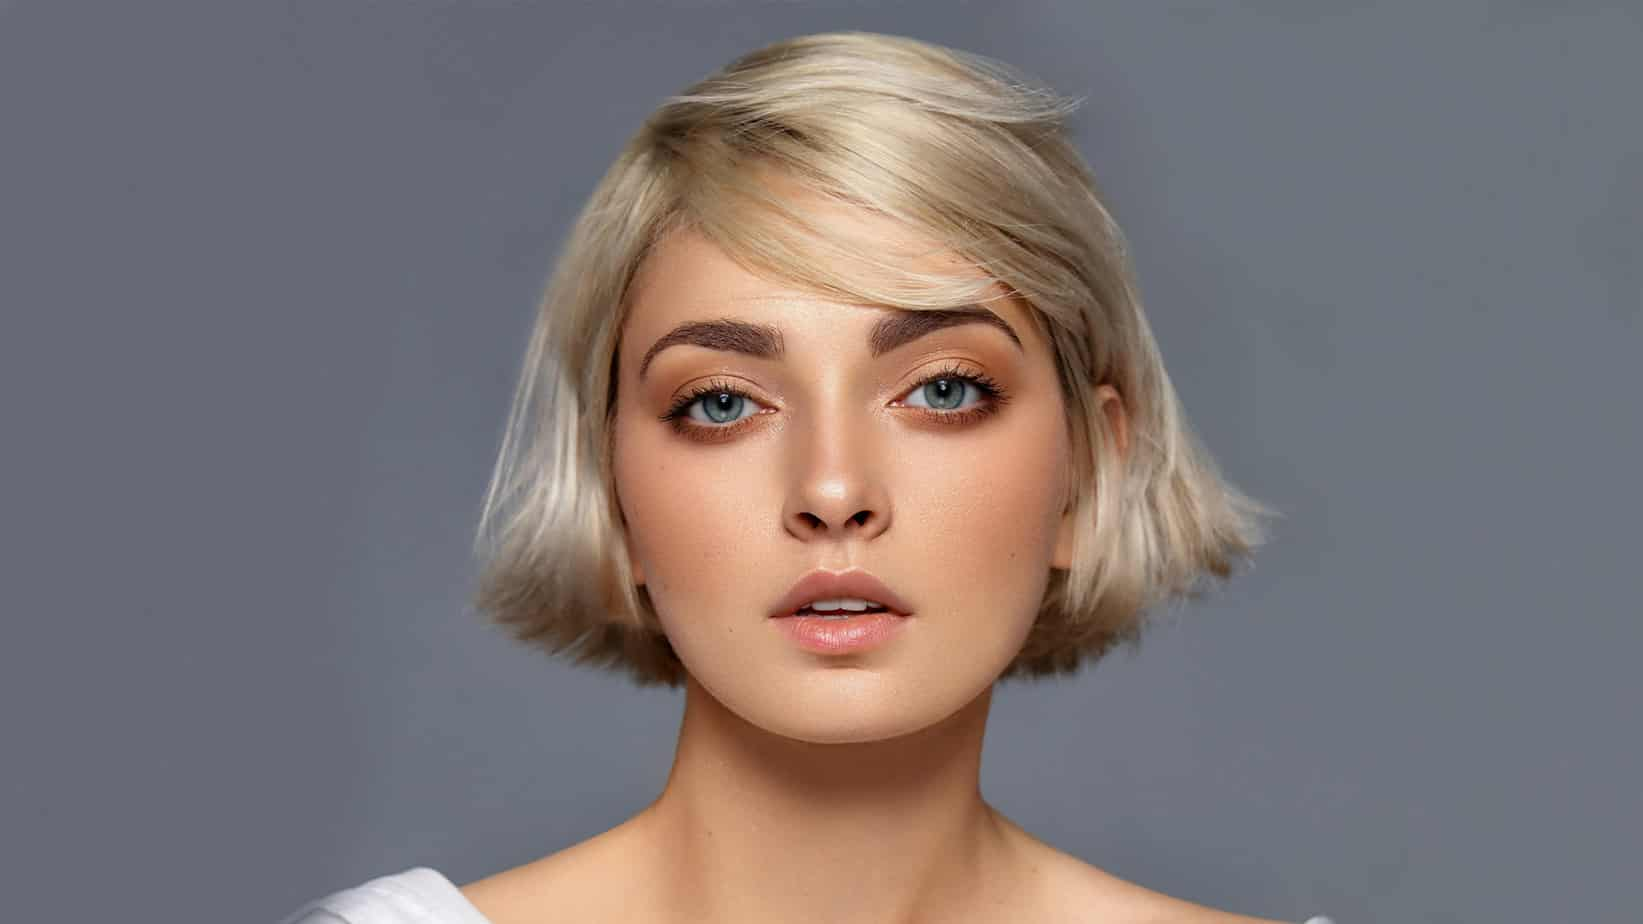 Hairstyles For Round Faces 2021 Top 10 Gorgeous Solutions Elegant Haircuts